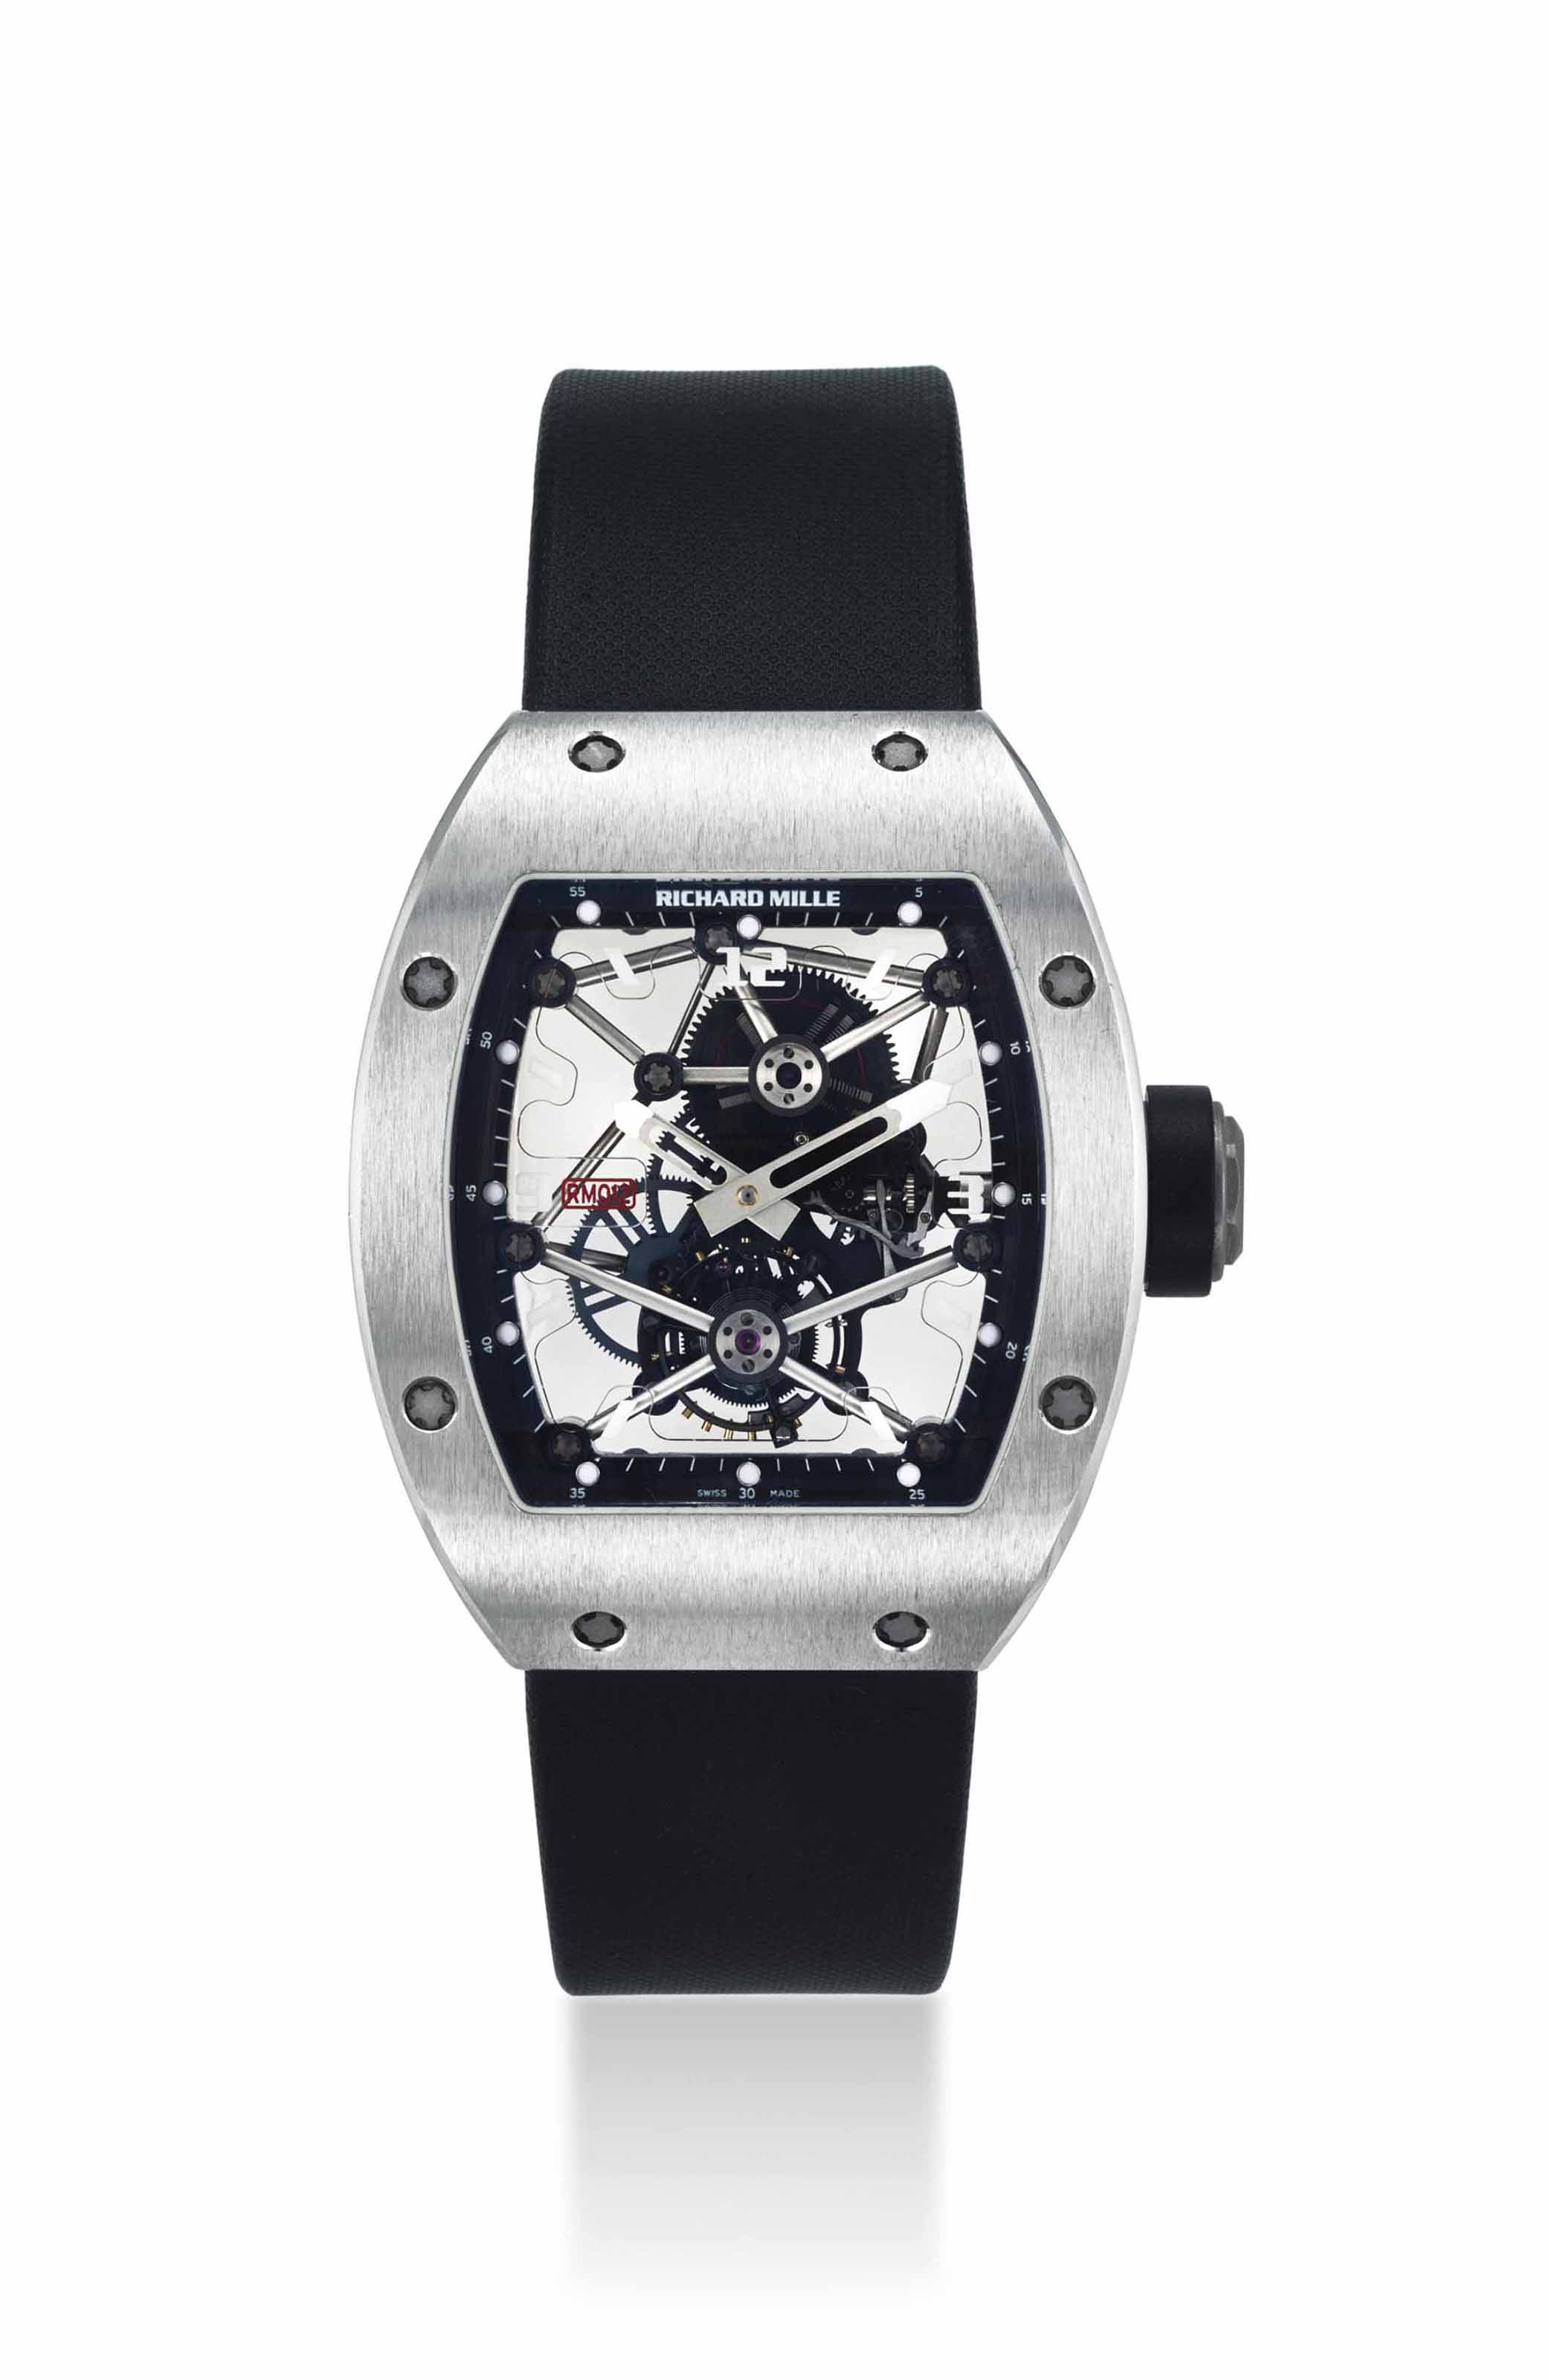 RICHARD MILLE. AN EXTREMELY FINE AND RARE PLATINUM LIMITED EDITION TONNEAU-SHAPED SKELETONIZED TOURBILLON WRISTWATCH